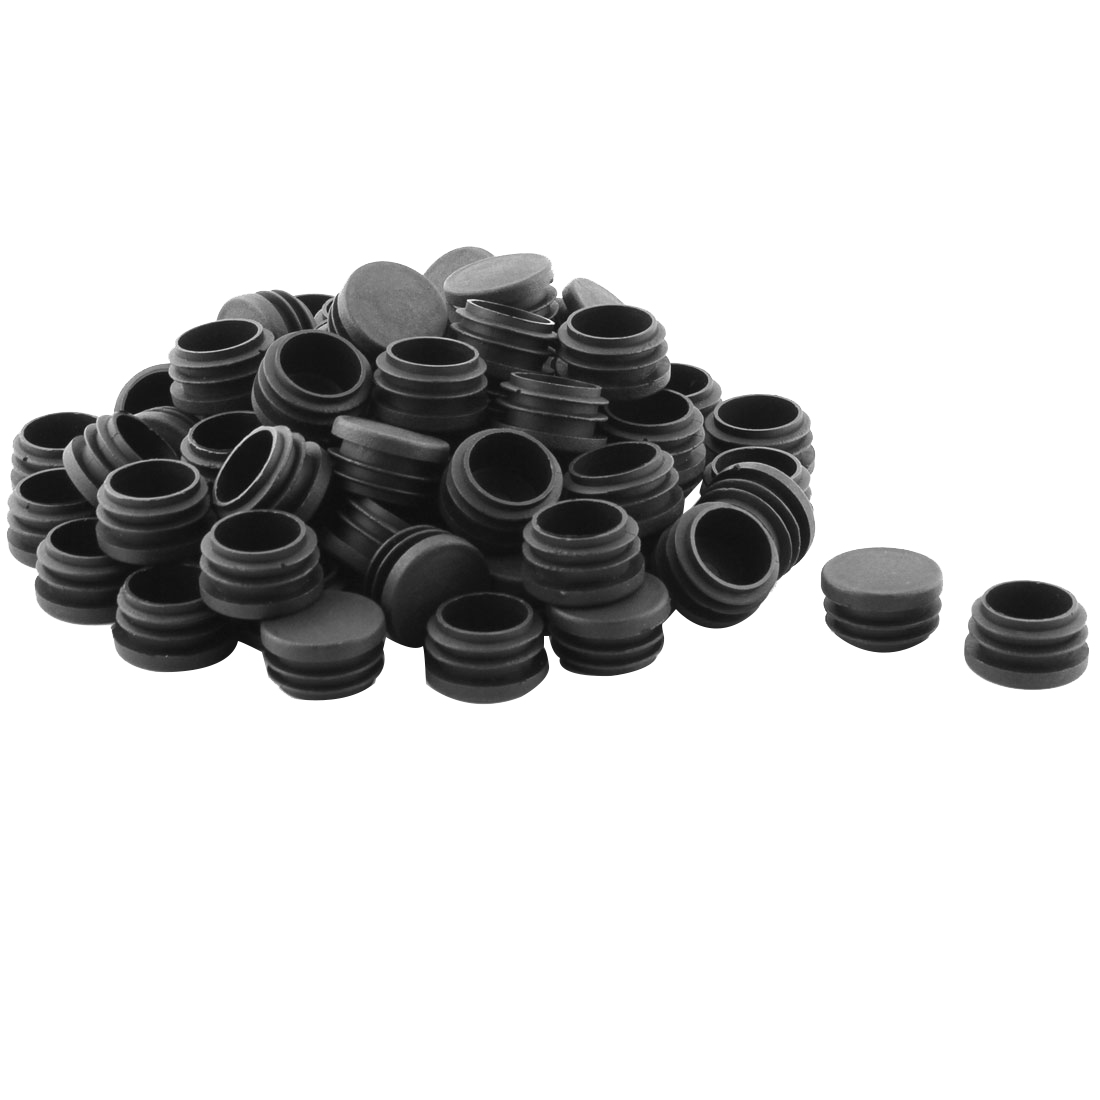 Table Chair Feet Plastic Round Shaped Pipe Tube Insert Cap Black 30mm Dia 70 Pcs